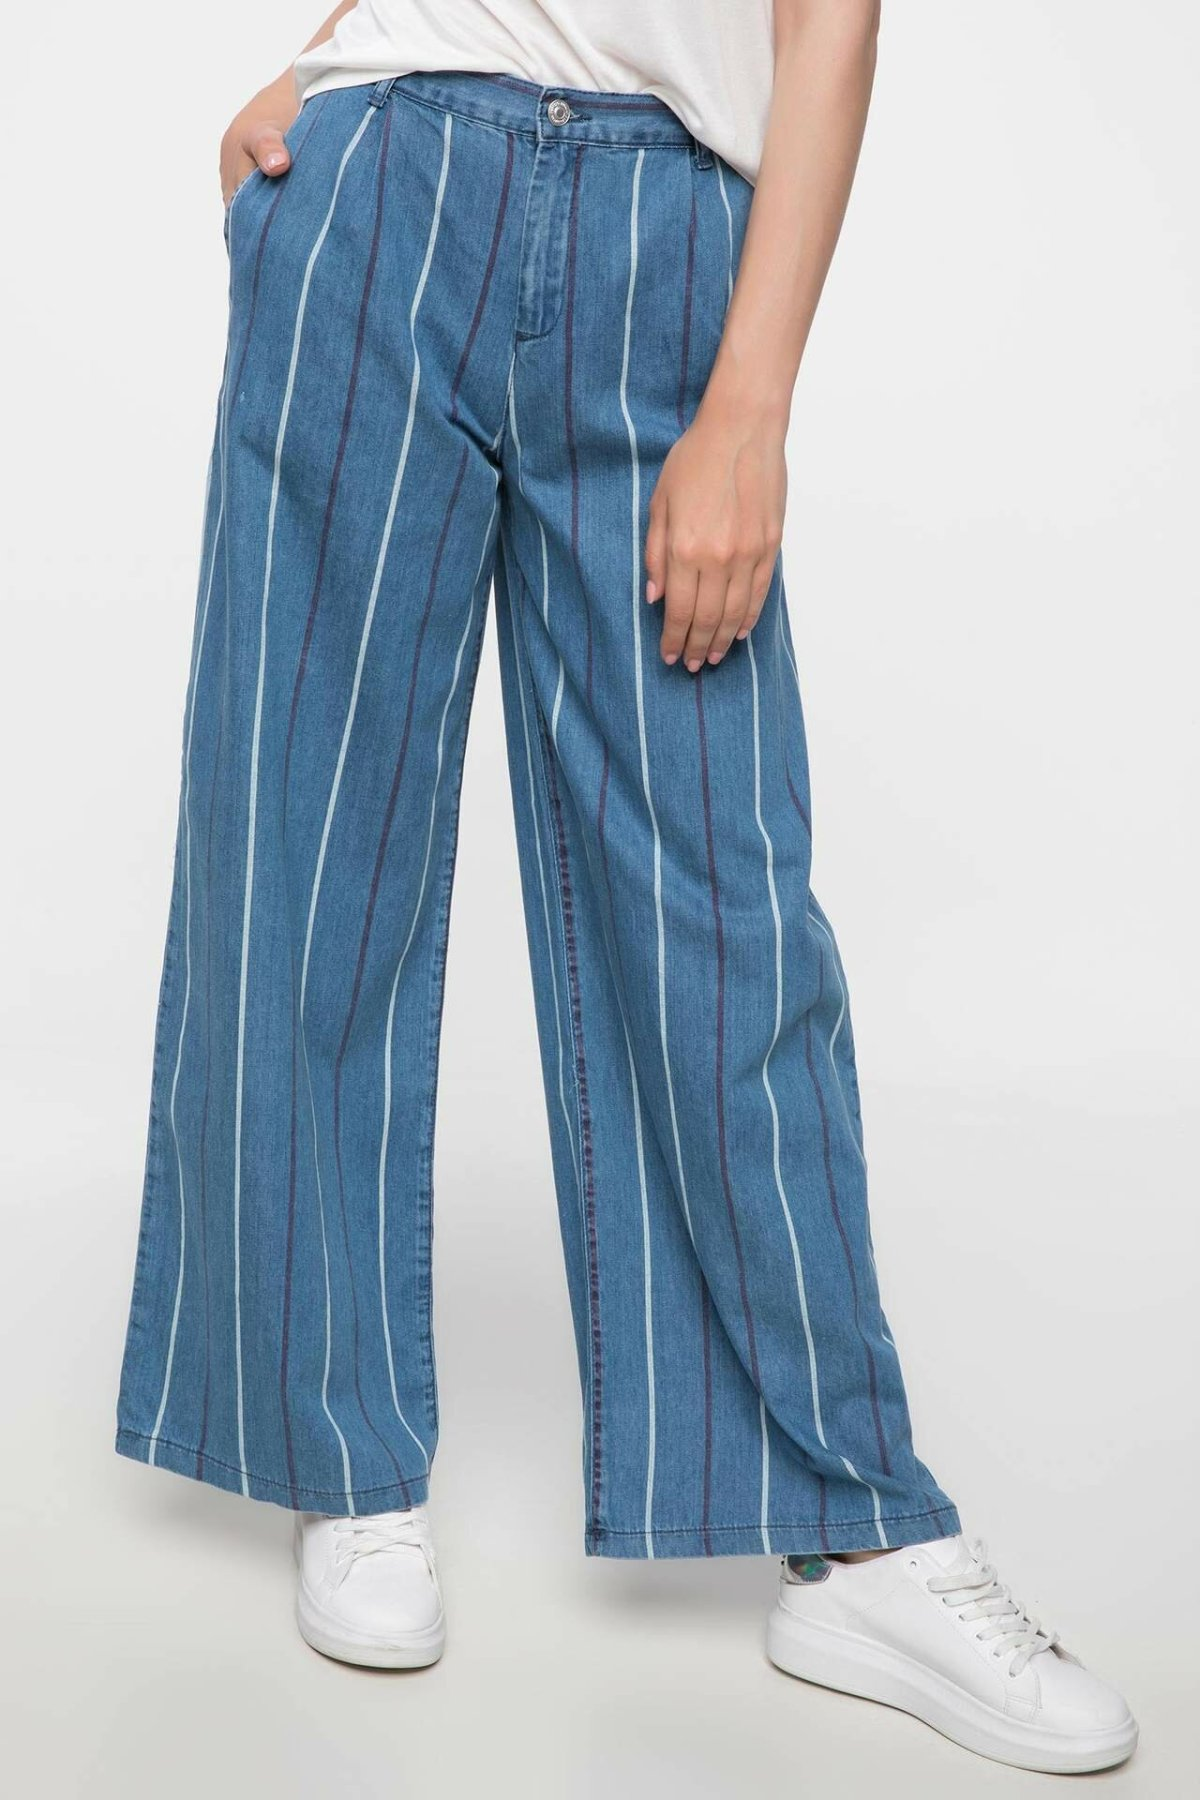 DeFacto Woman Summer Wide-leg Long Pants Women Striped Blue Color Bottoms Female Loose Adjustable Trousers-J3482AZ18HS